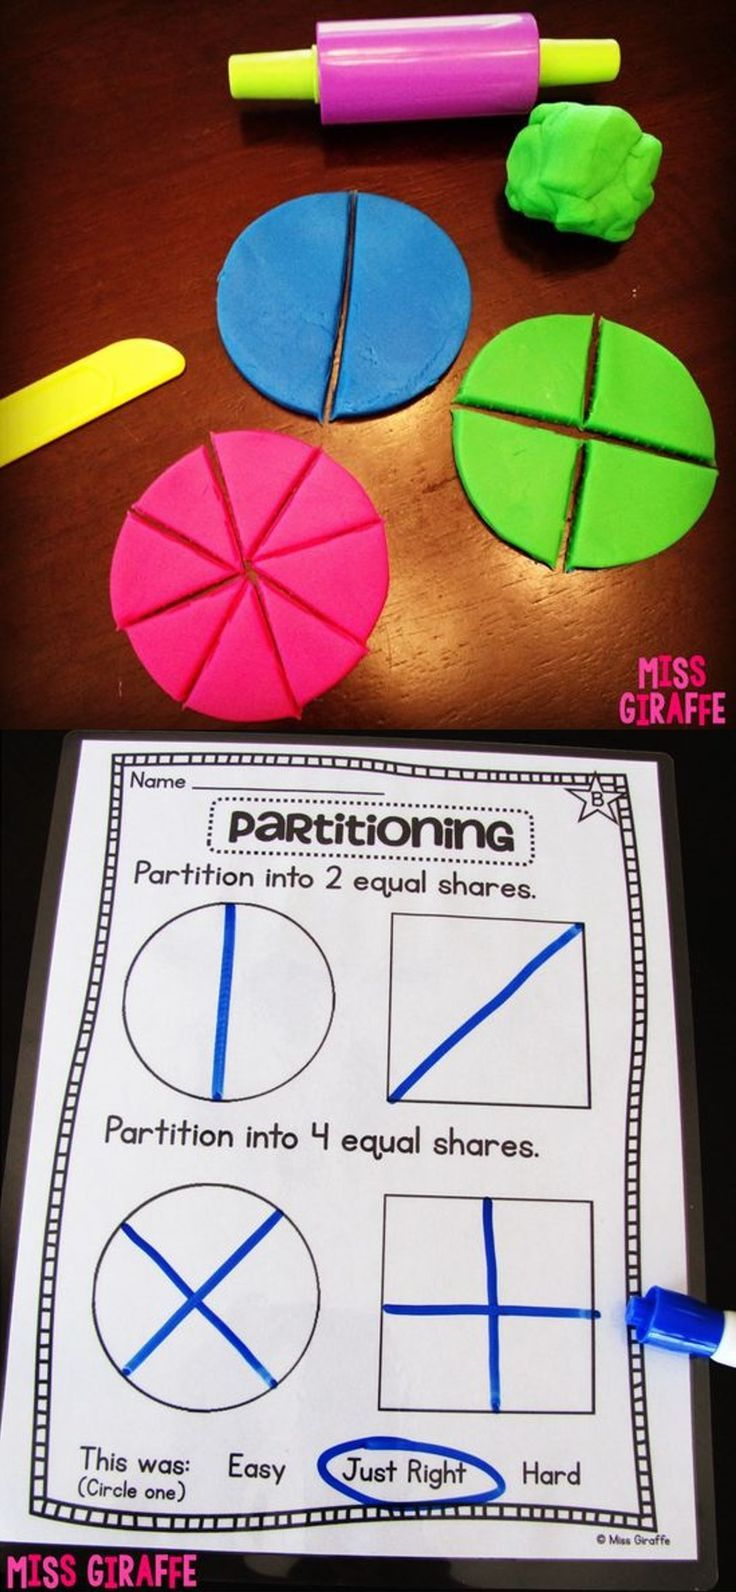 Worksheet First Grade Fractions first grade fractions activities and ideas to practice partitioning shapes into equal parts